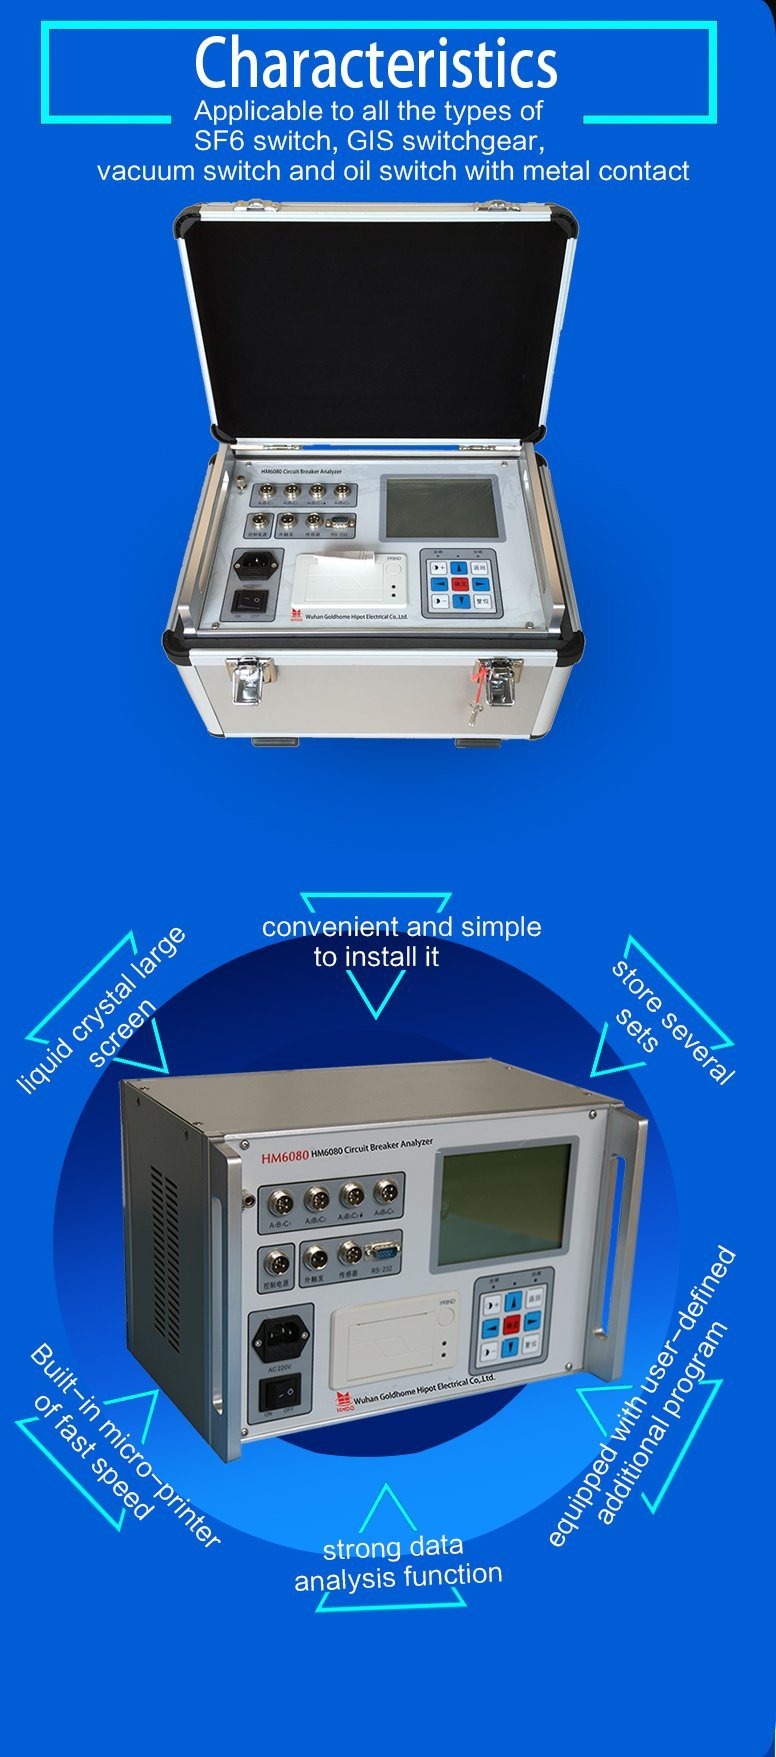 Timing Test Switch Tester Circuit Breaker Analyzer China Simple Crystal Is Supplied In The Device And Of Low Pressure Operating Completed Automatically To Measure Voltage